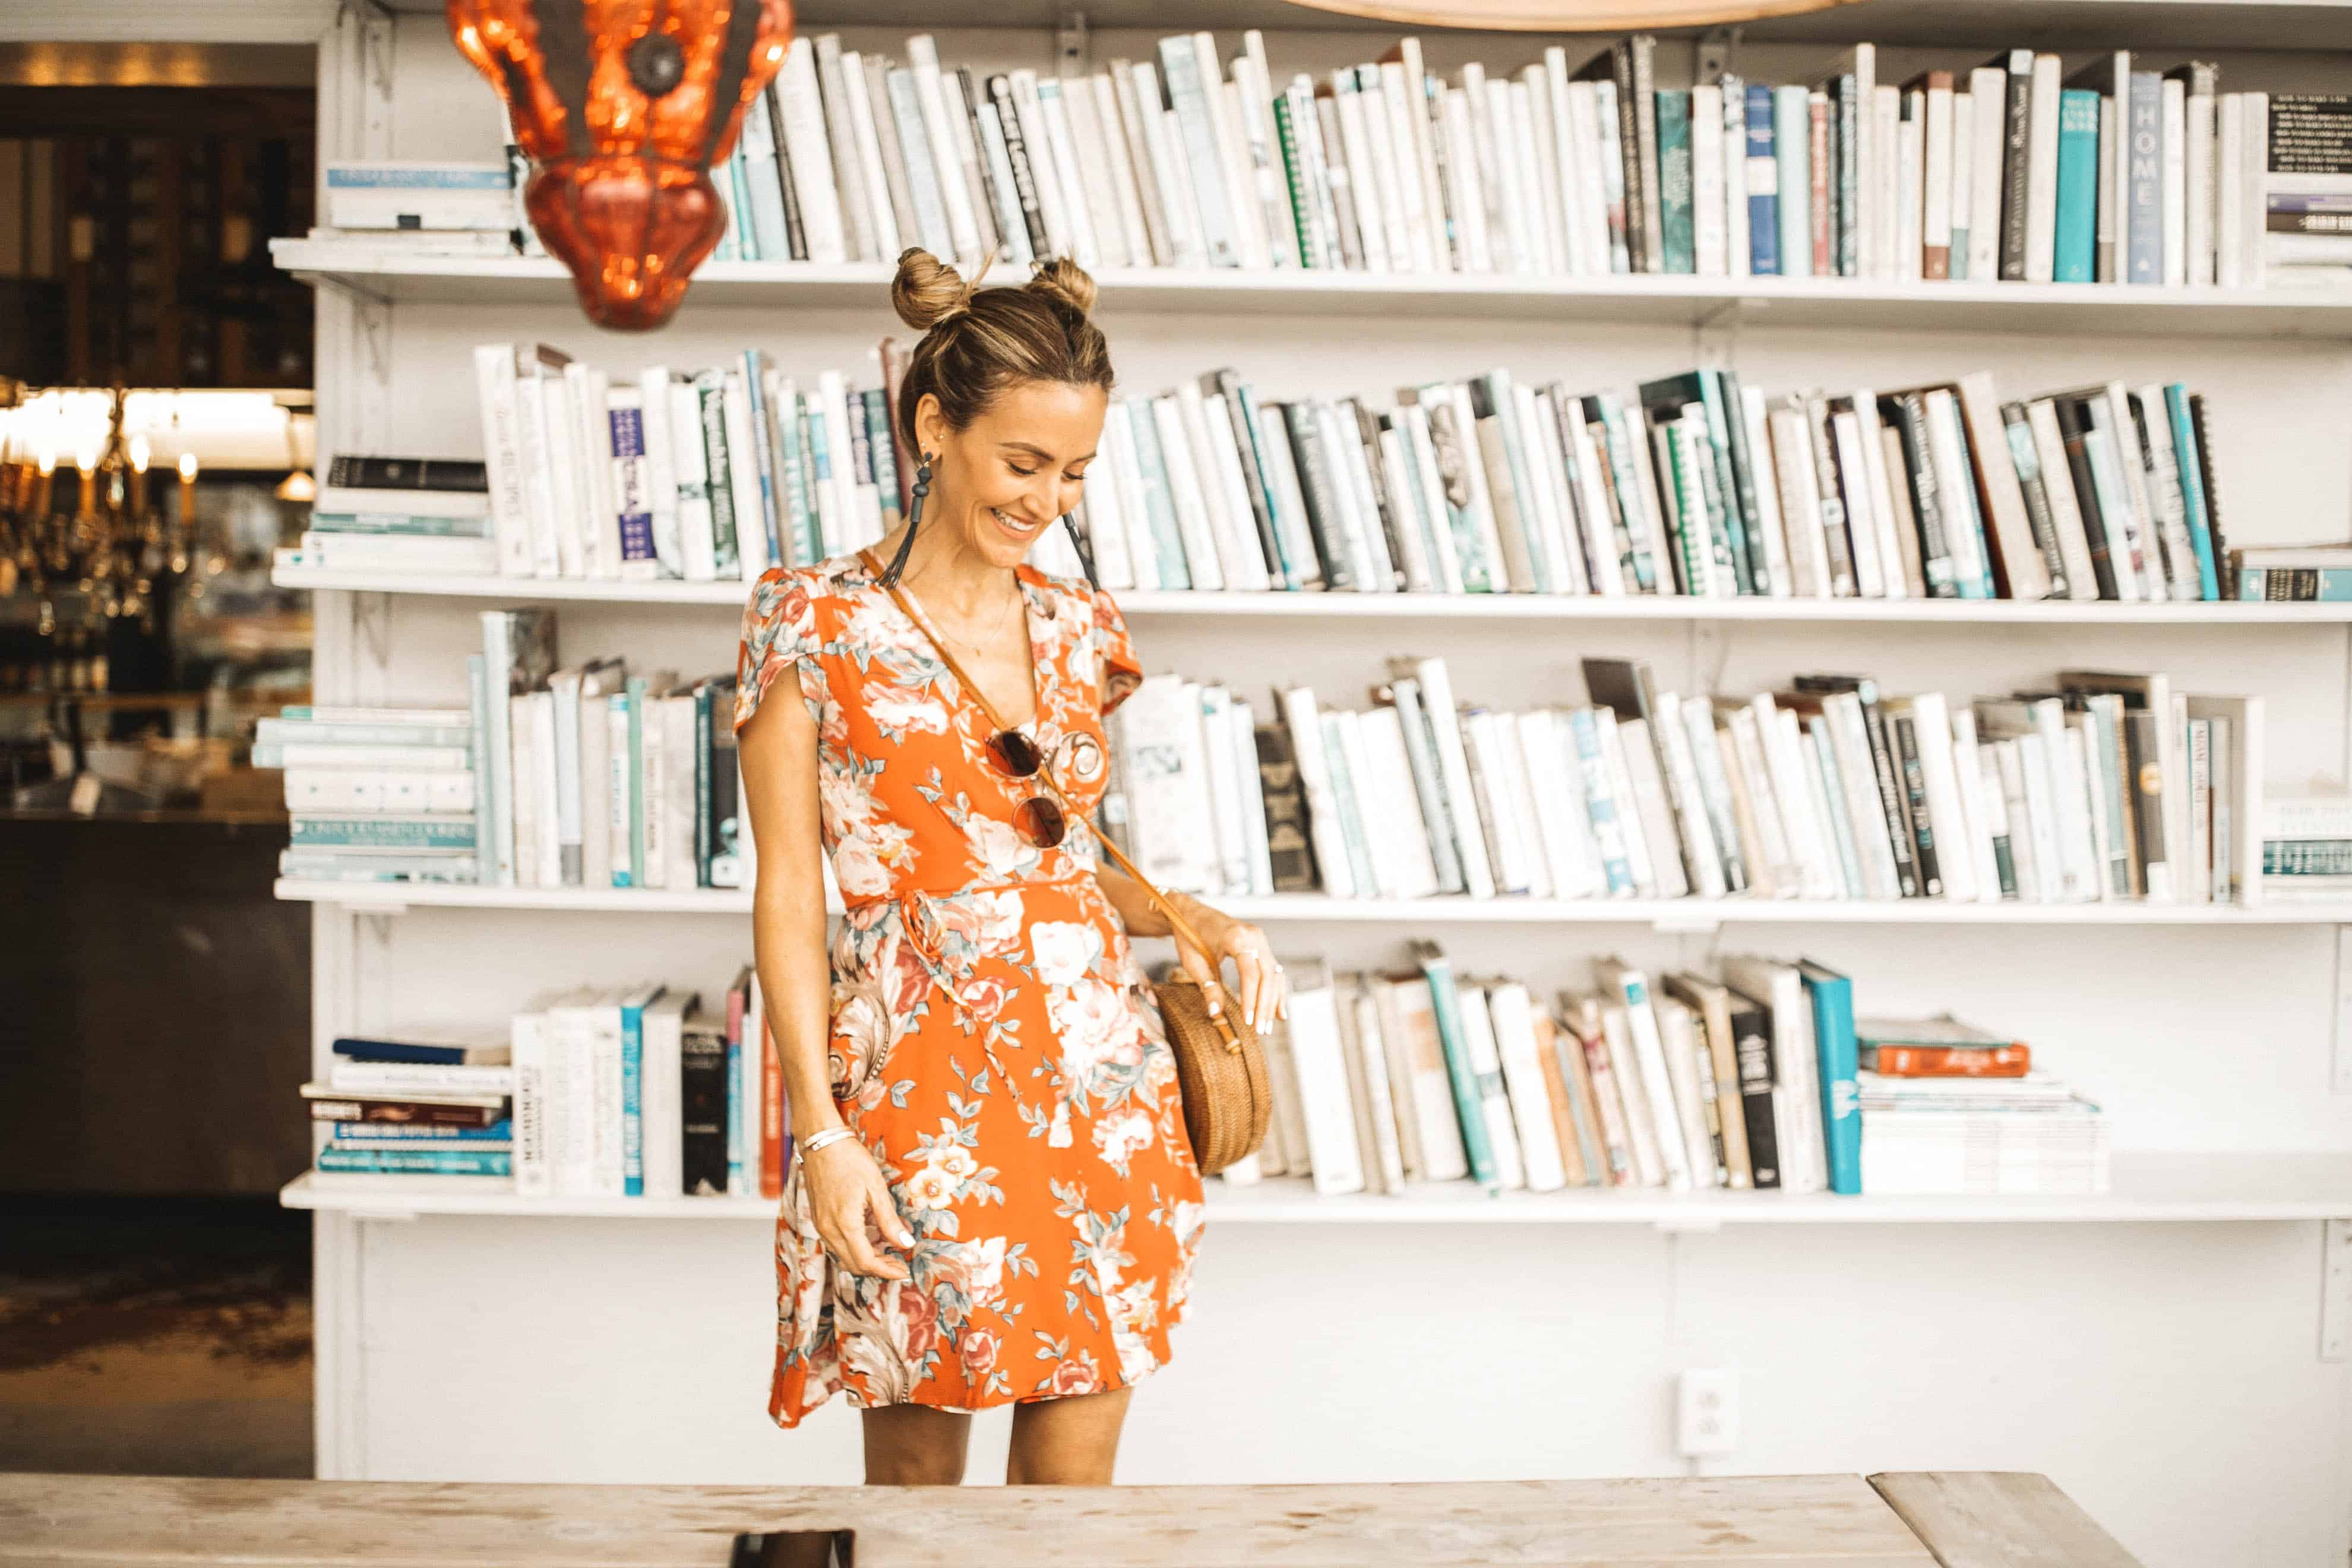 piggy buns hair style and coral floral dress - Spring Essentials: Lulus Dresses, Shorts, Top and Jumpsuit featured by popular Indianapolis fashion blogger, Karina Style Diaries